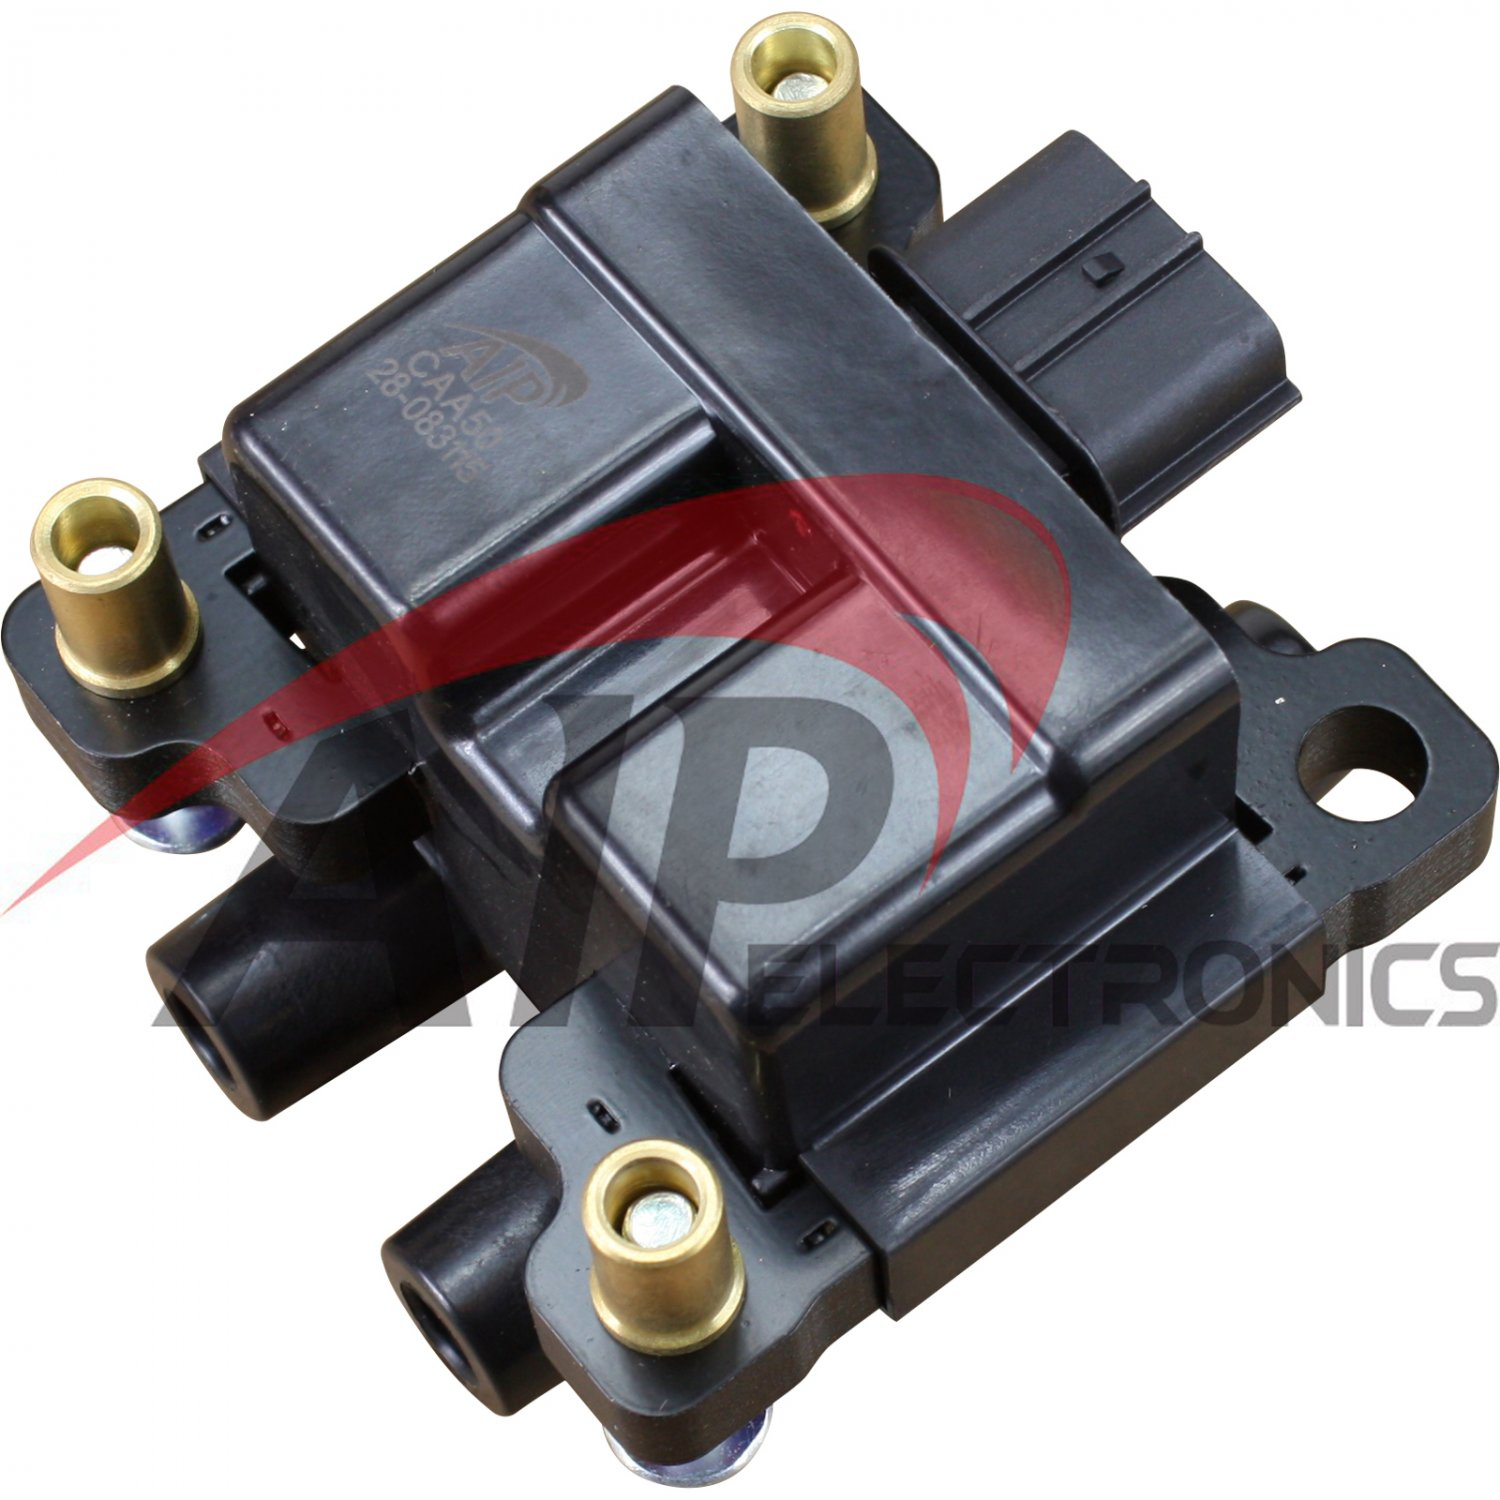 Brand New Ignition Coil Pack SUBARU 2.5L 4cyl H4 SOHC Complete Oem Fit CAA50